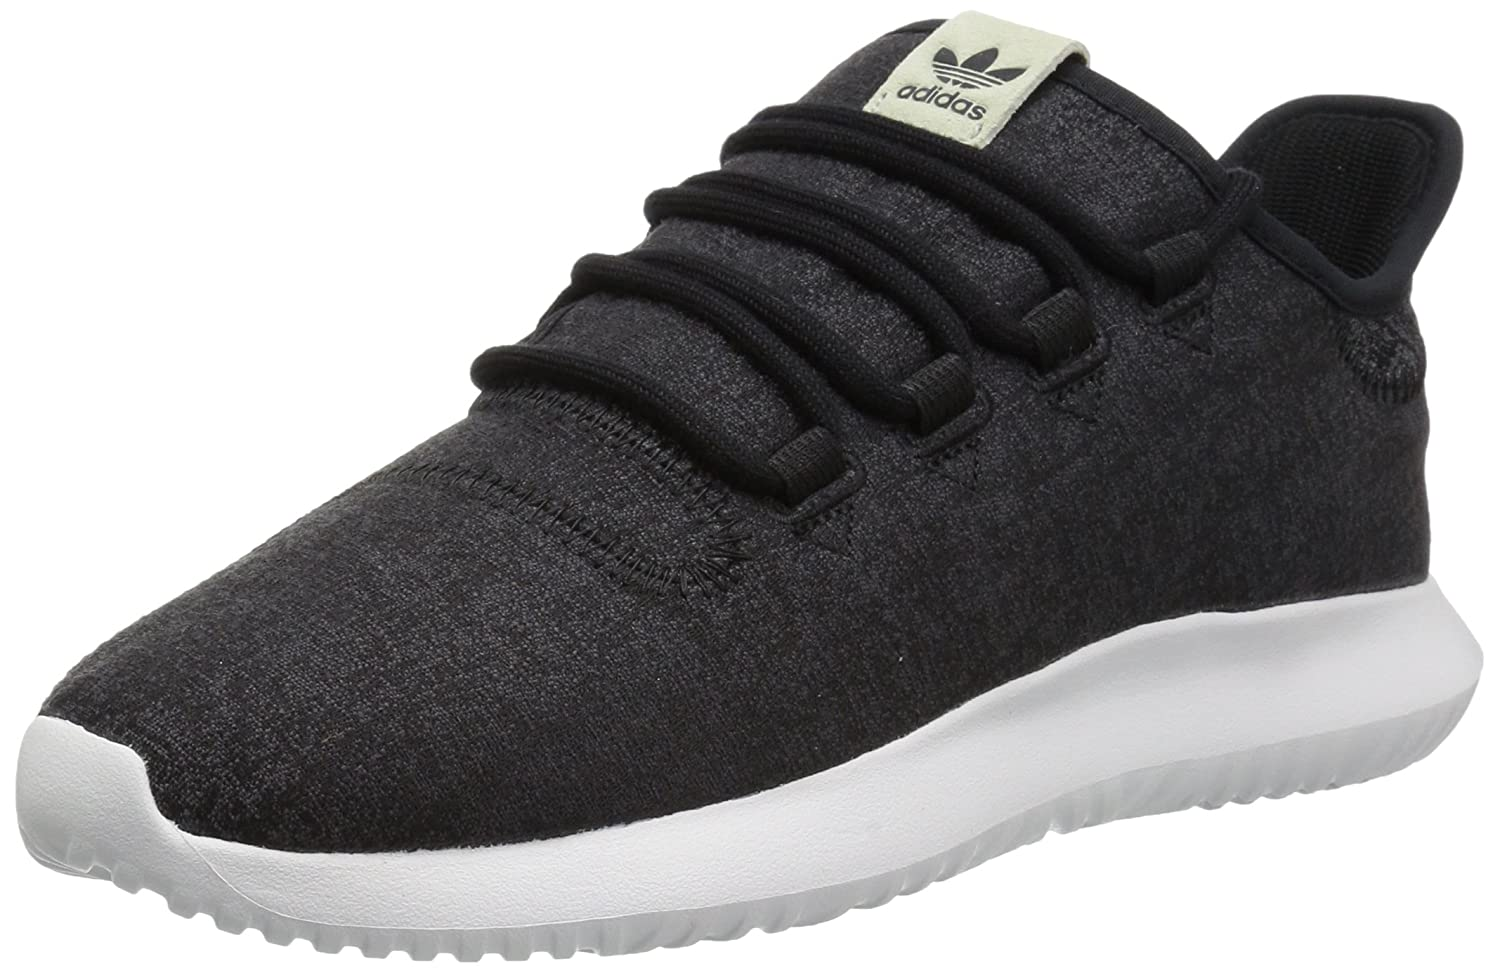 adidas Originals Women's Tubular Shadow W Fashion Sneaker B01MXYBG67 9.5 B(M) US|Black/Grey Five/White